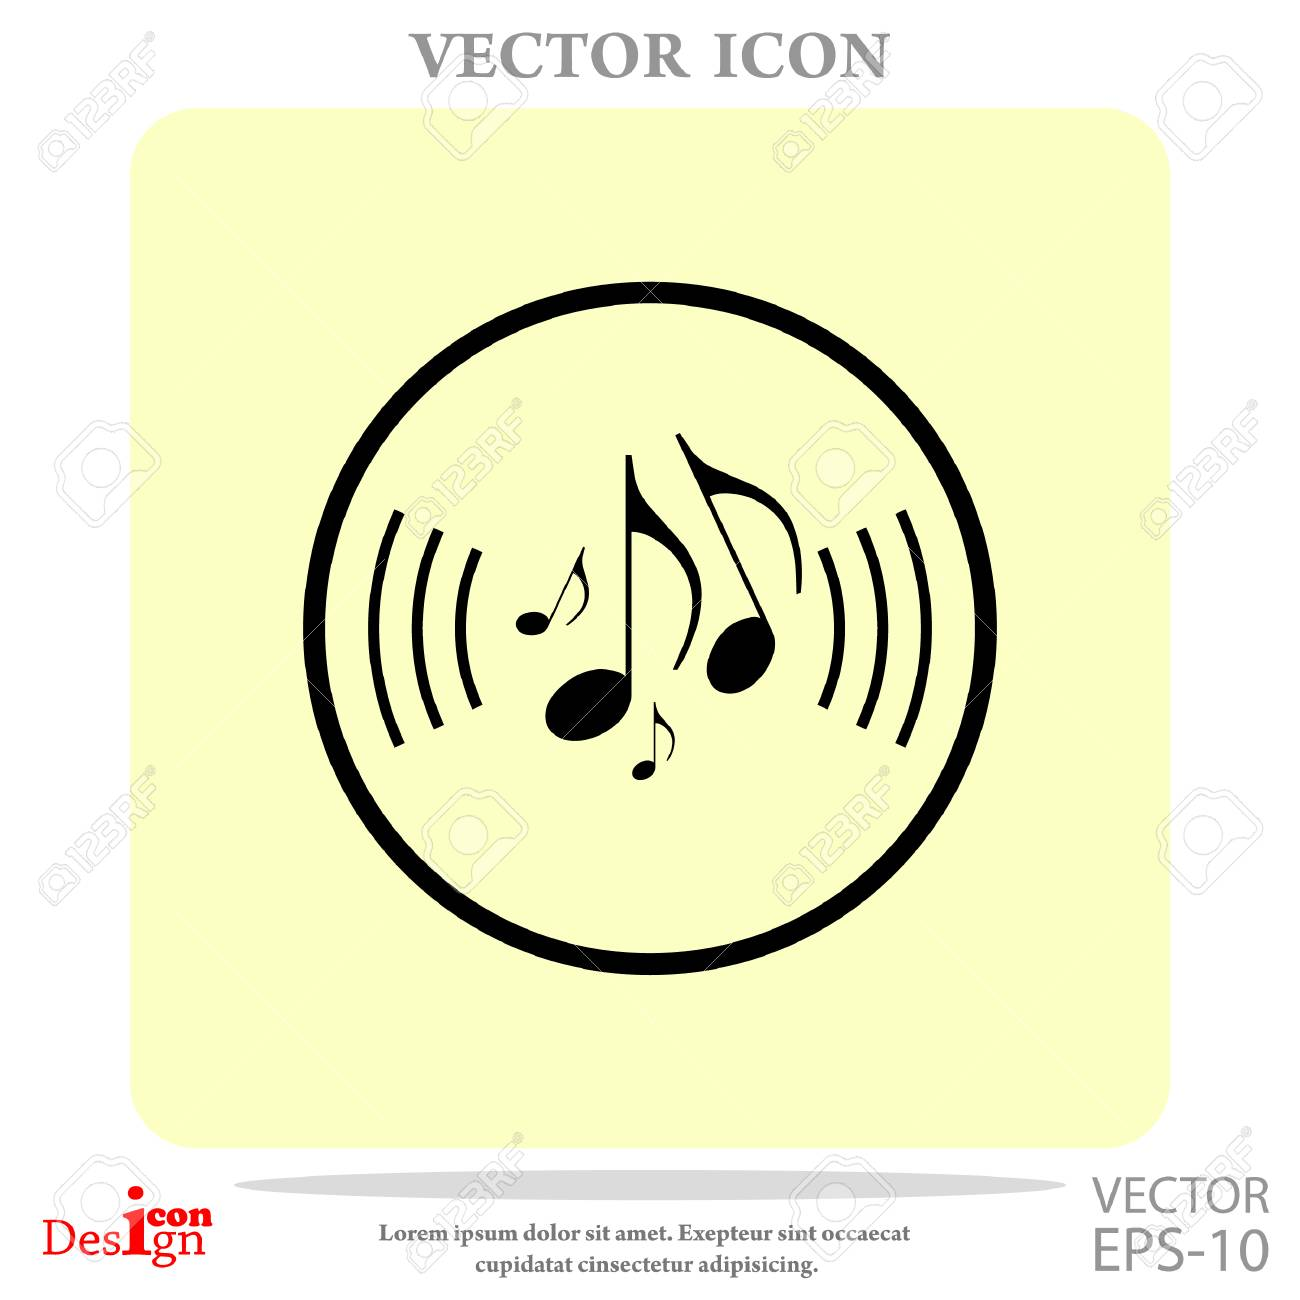 Music Note Vector Icon Royalty Free Cliparts, Vectors, And Stock ...